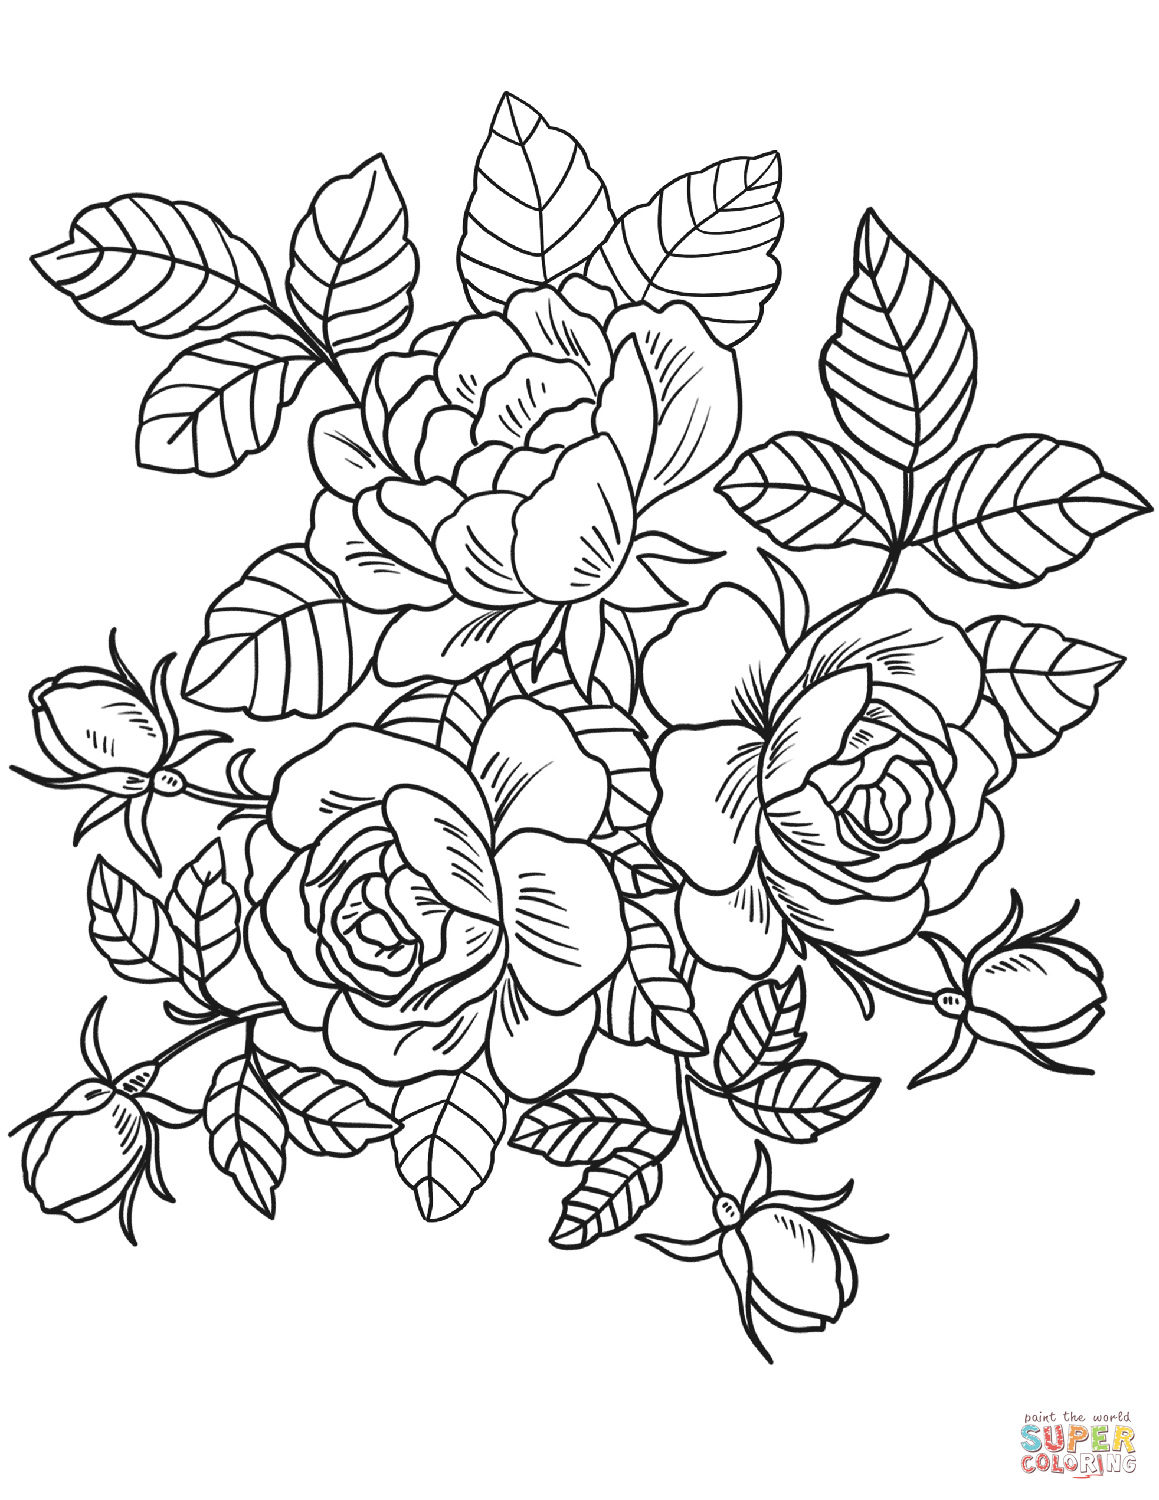 picture of flowers to colour roses flowers coloring page free printable coloring pages picture of to colour flowers